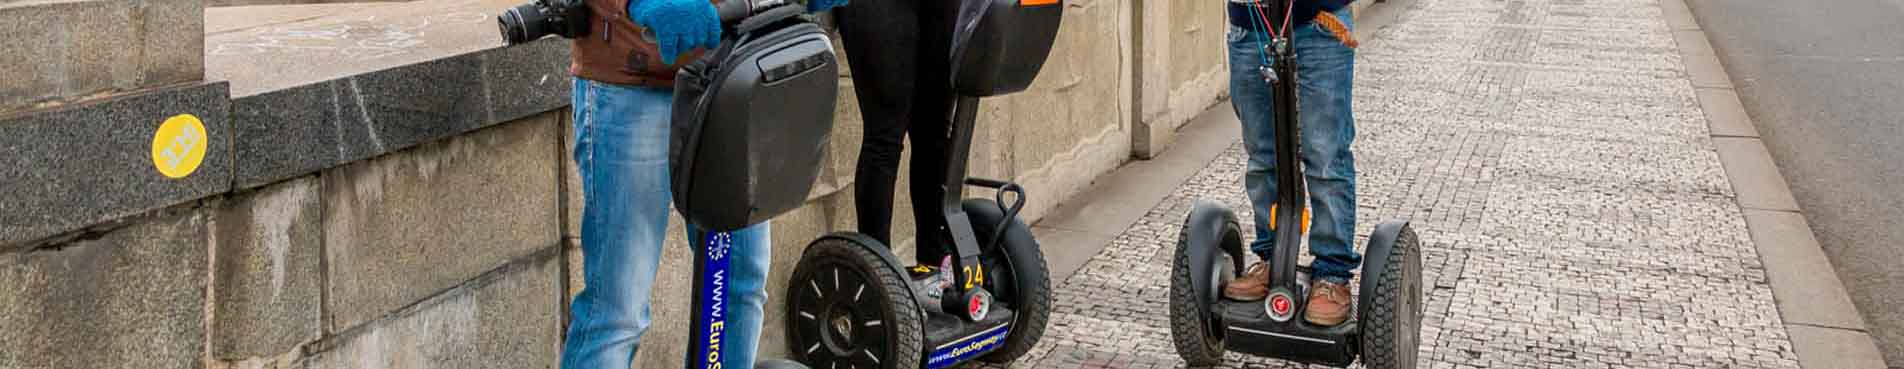 1 hour prague segway tour review background